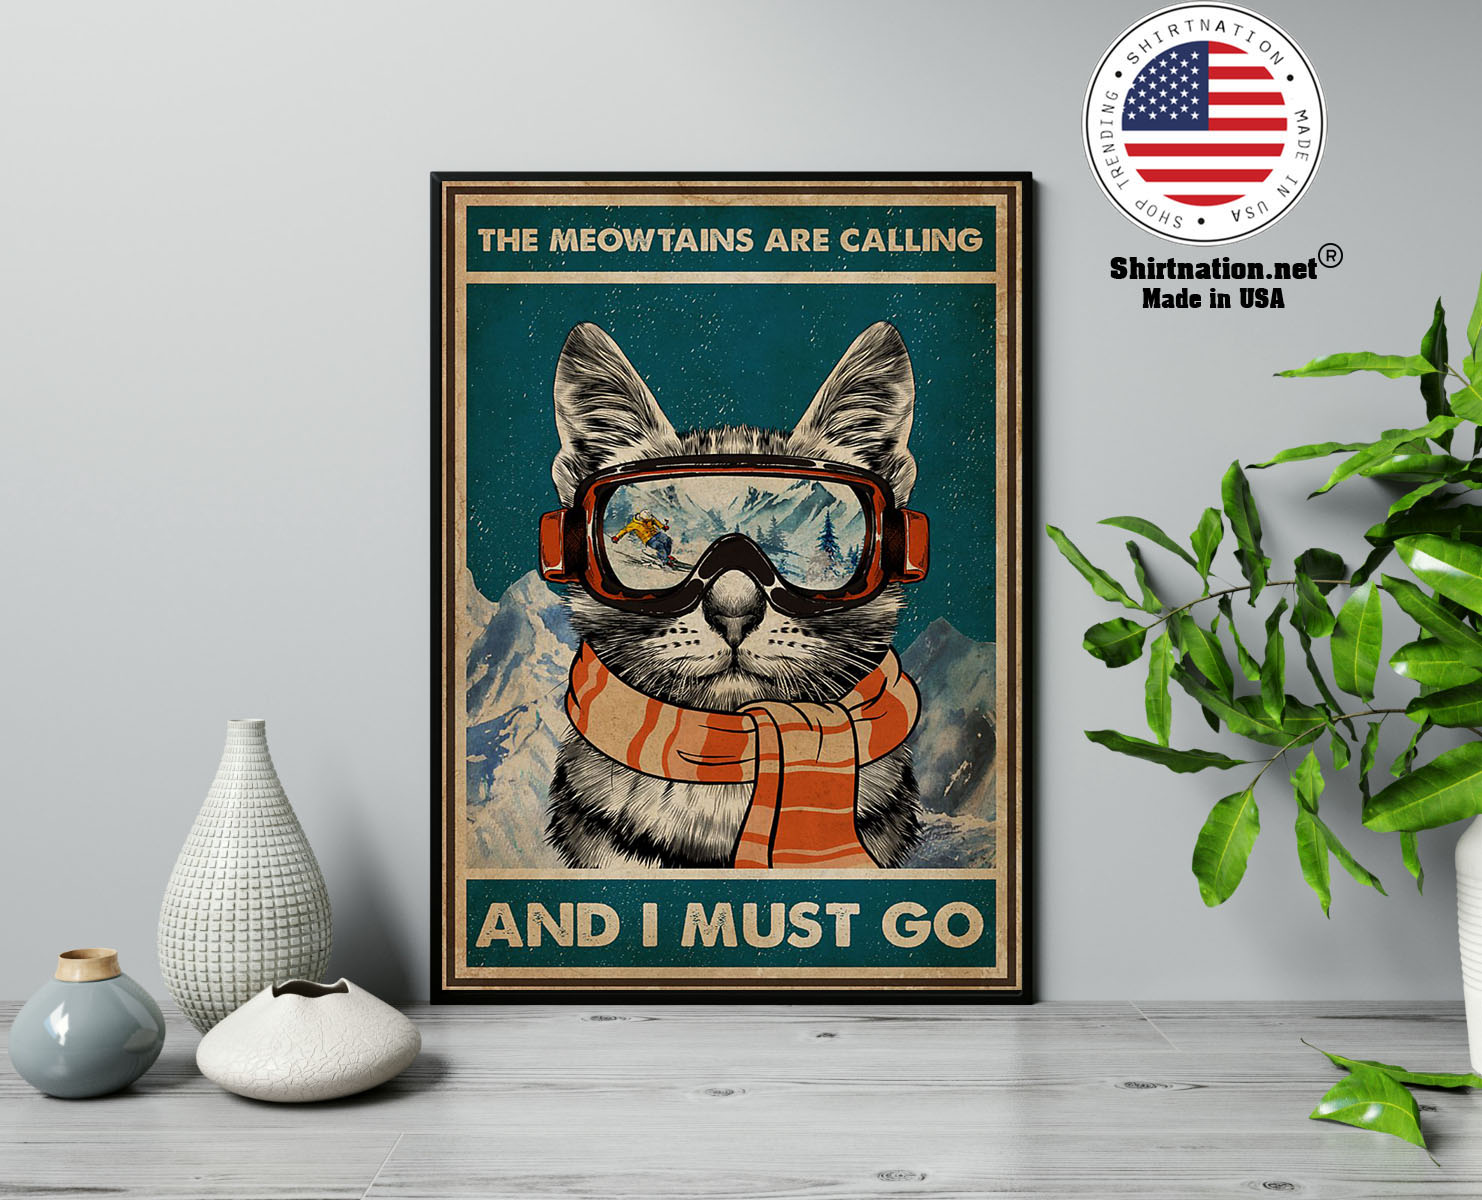 The meowtains are calling and I must go poster 13